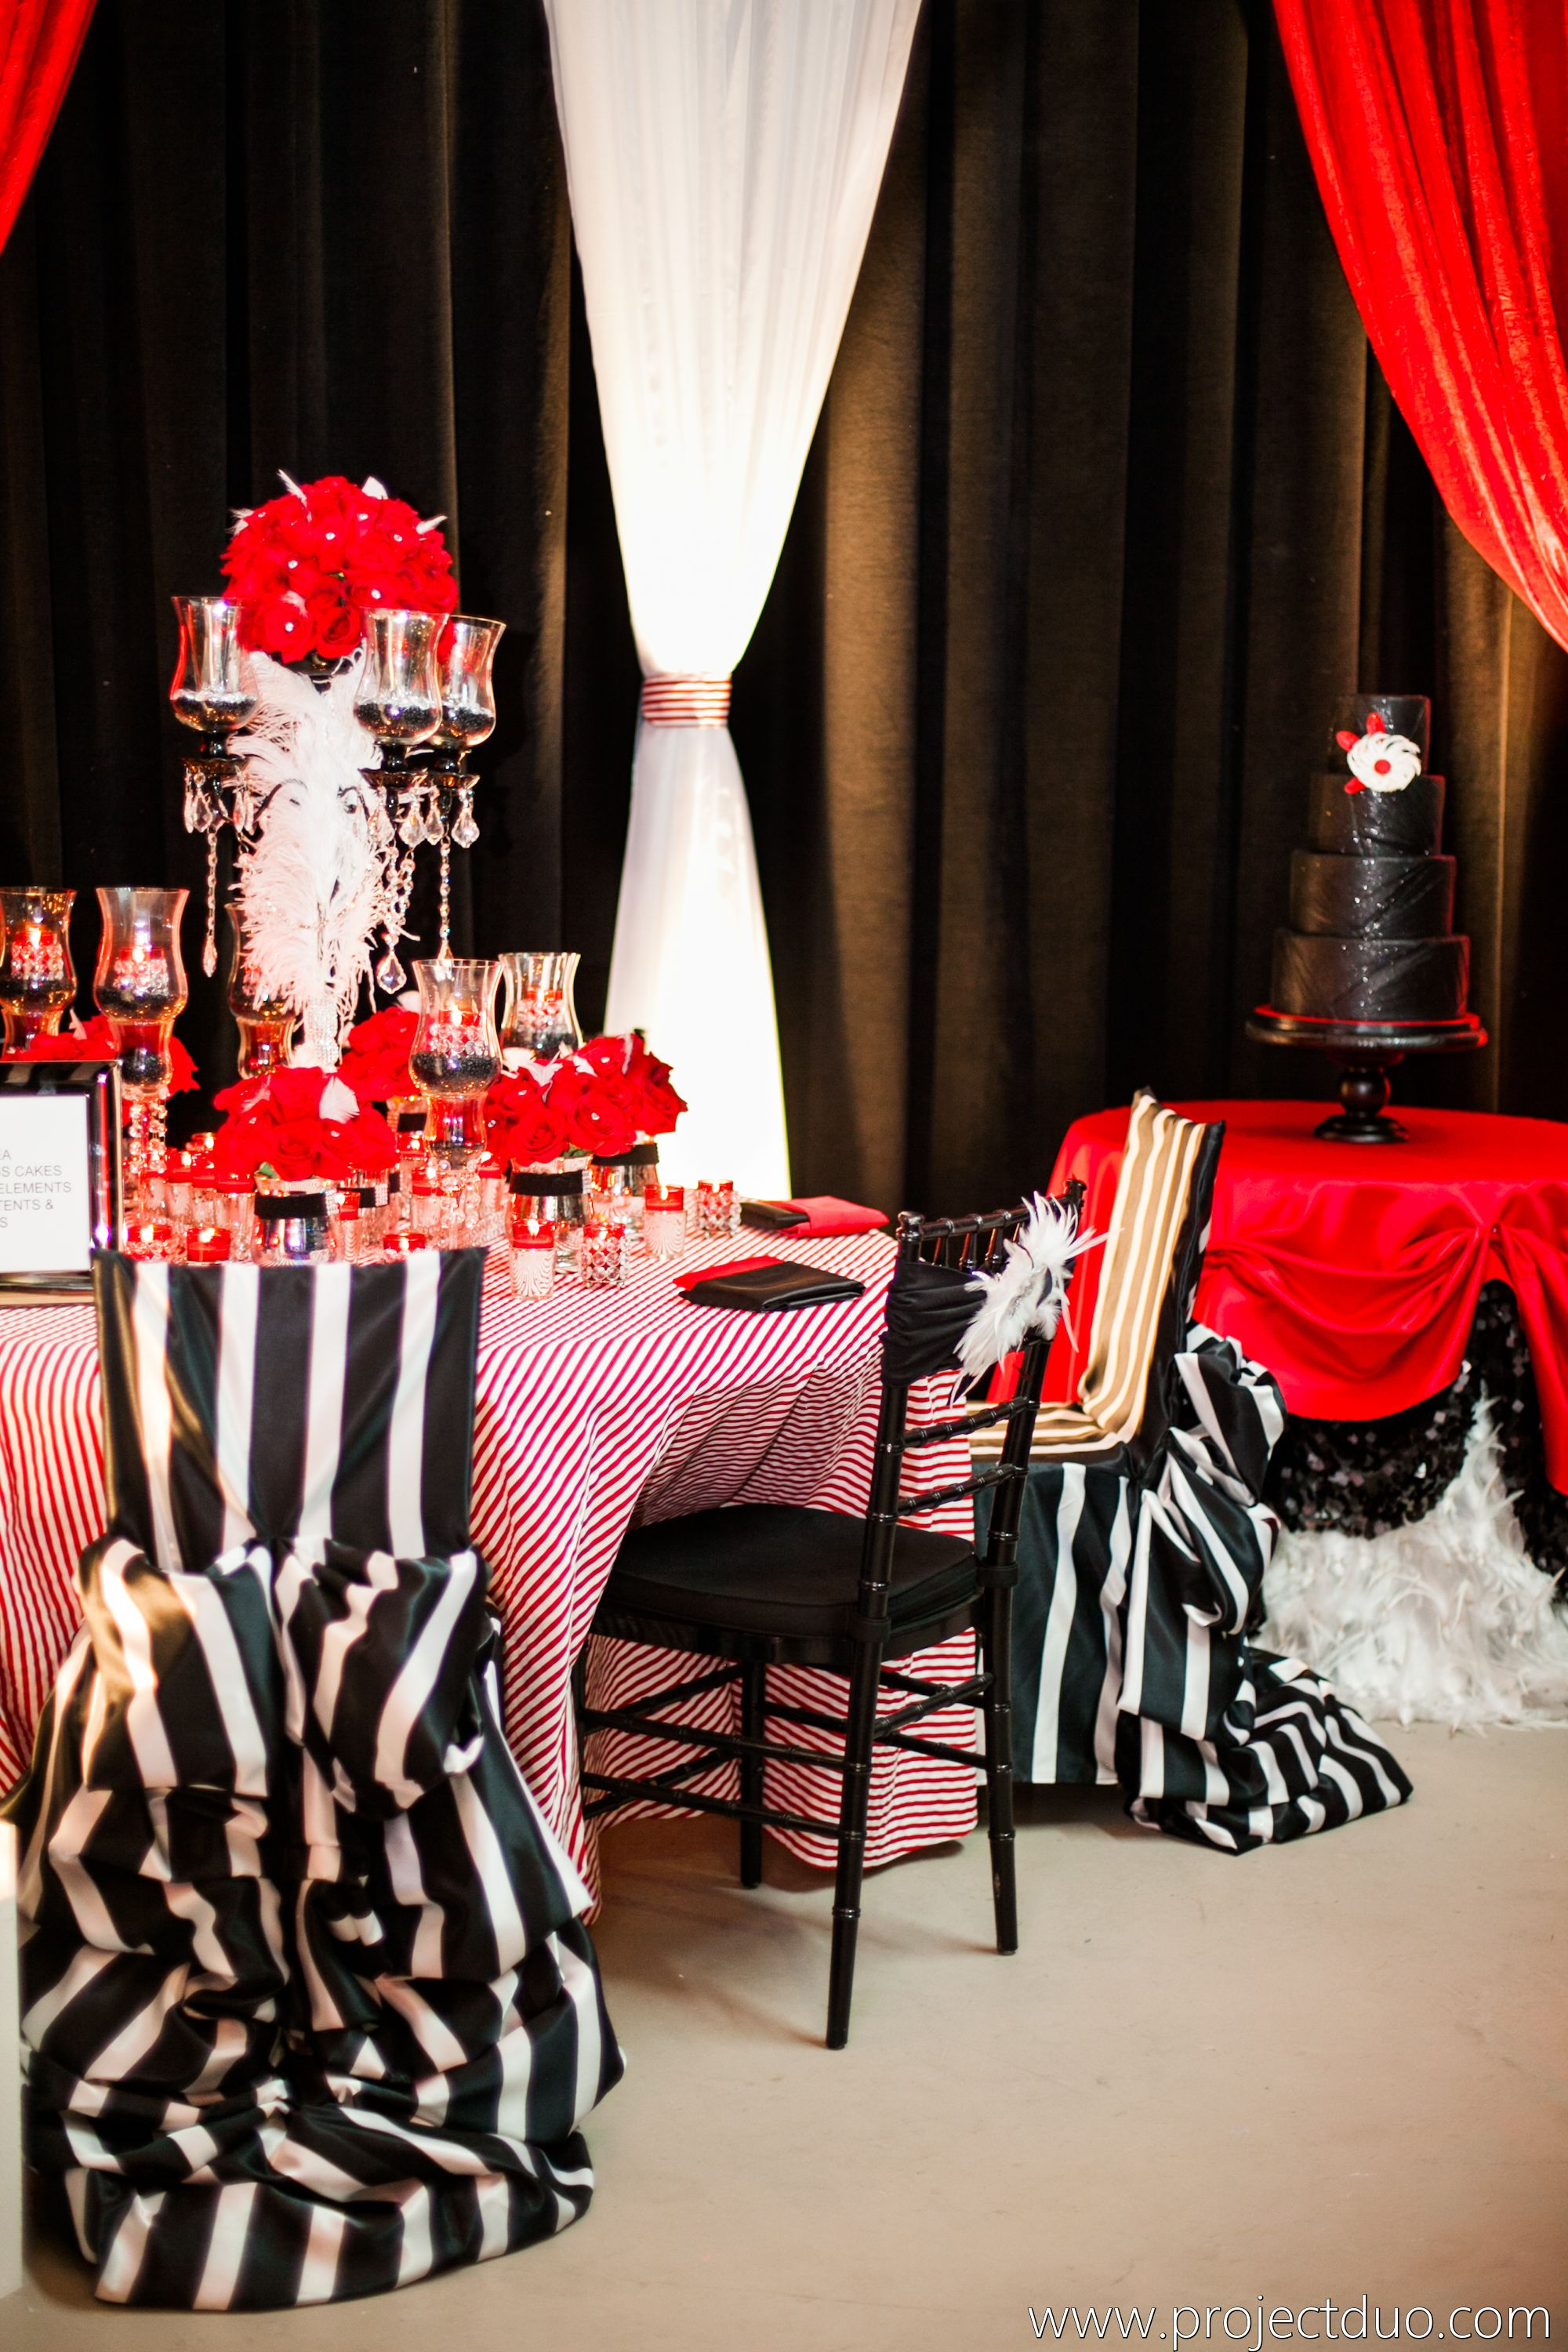 Moulin rouge party moulin rouge party pinterest - Moulin Rouge Dessert Table Google Search